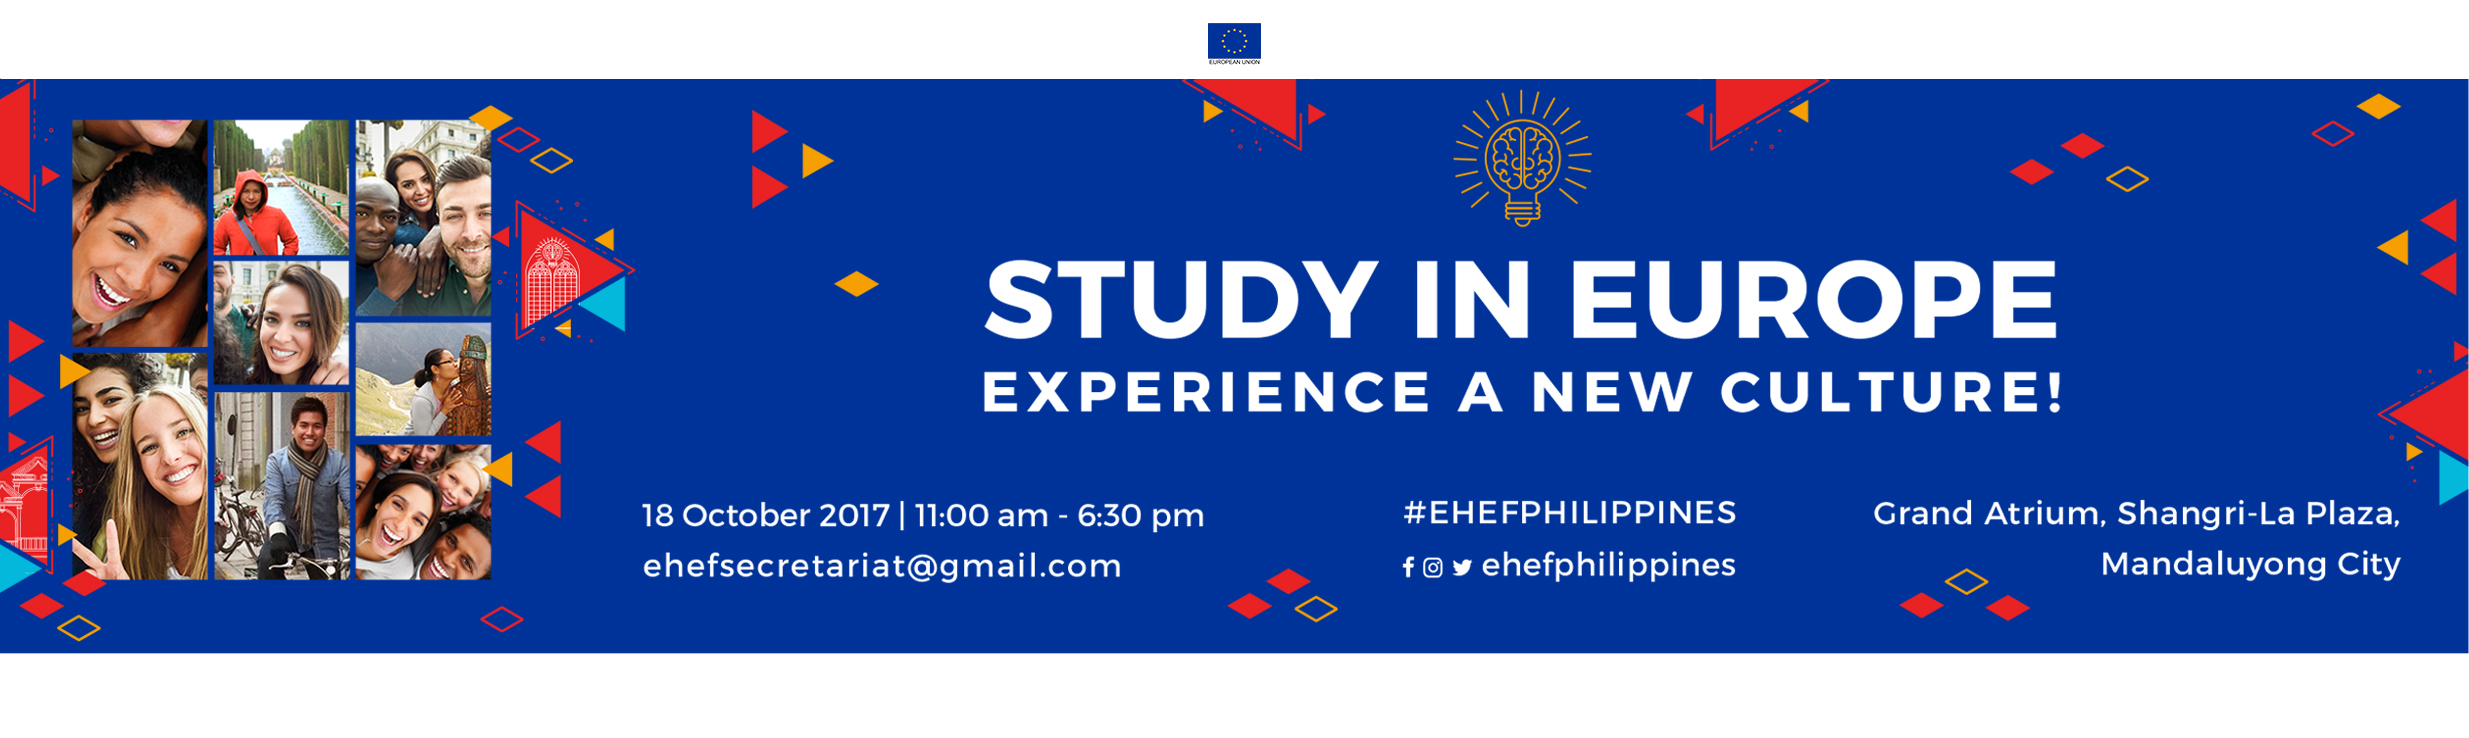 Free education in Europe - Study Abroad in Europe